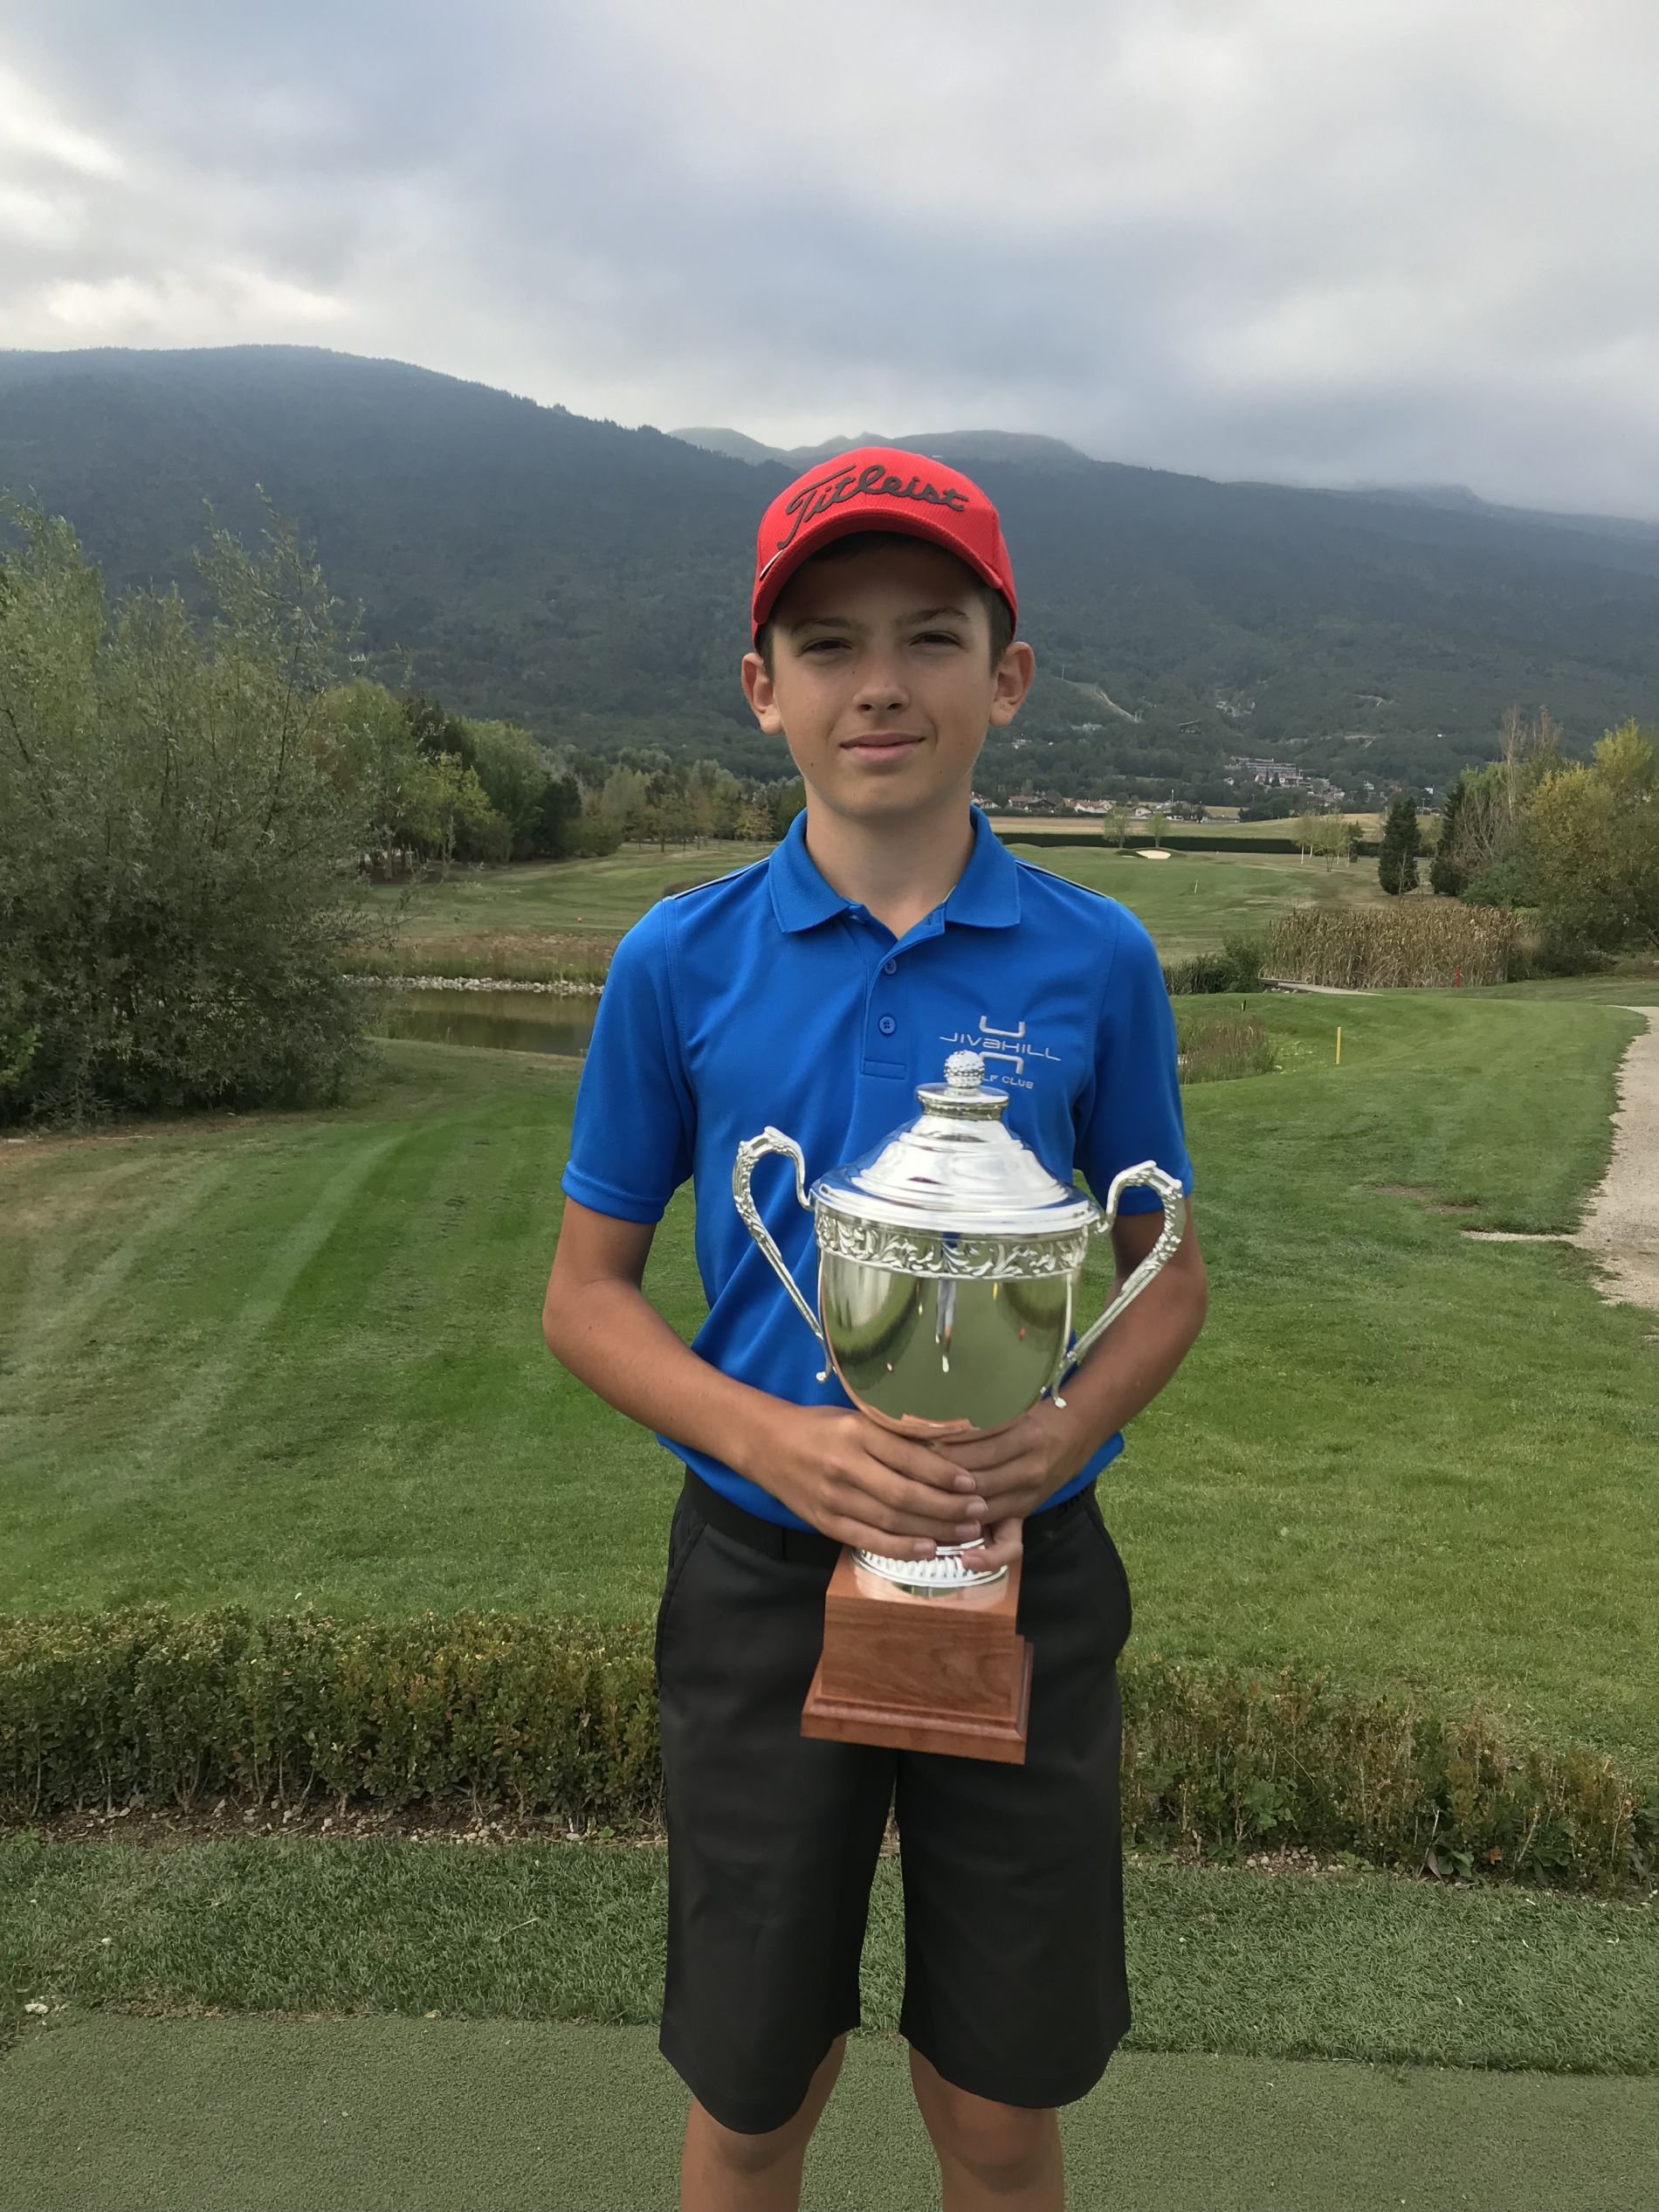 Luca Casini, Champion junior 2019